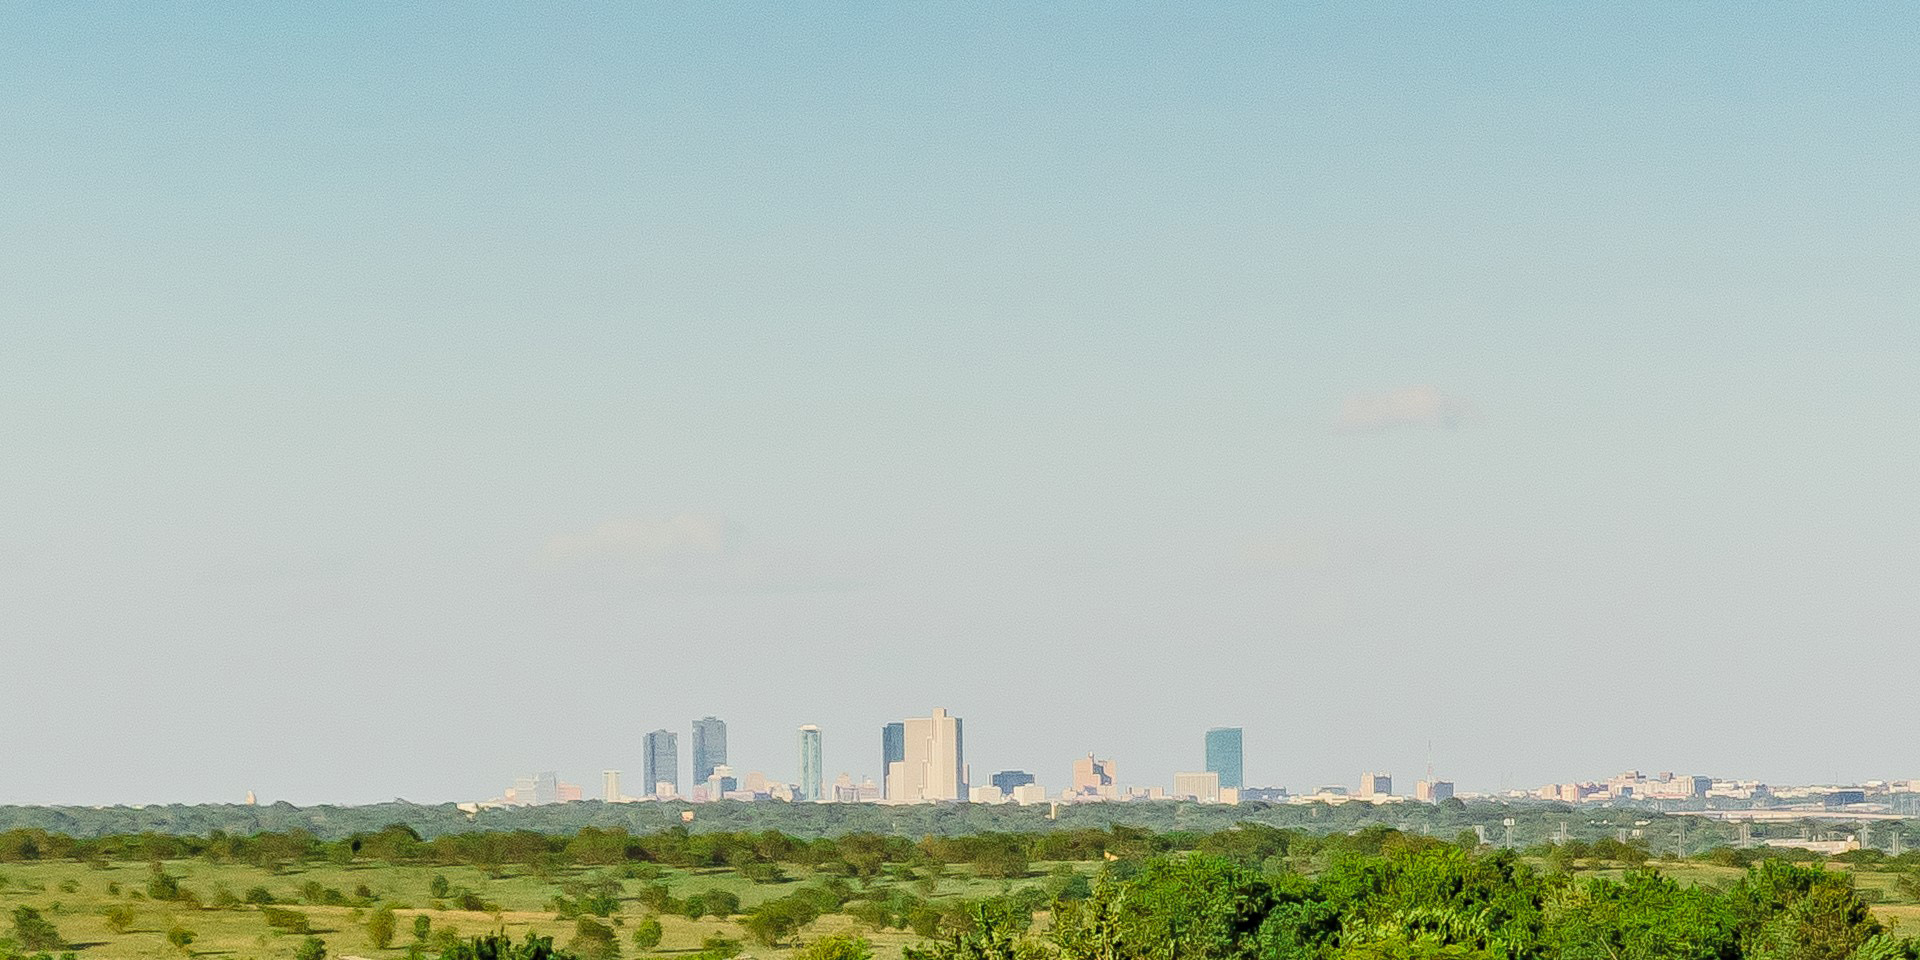 Fort Worth skyline from Ventana community